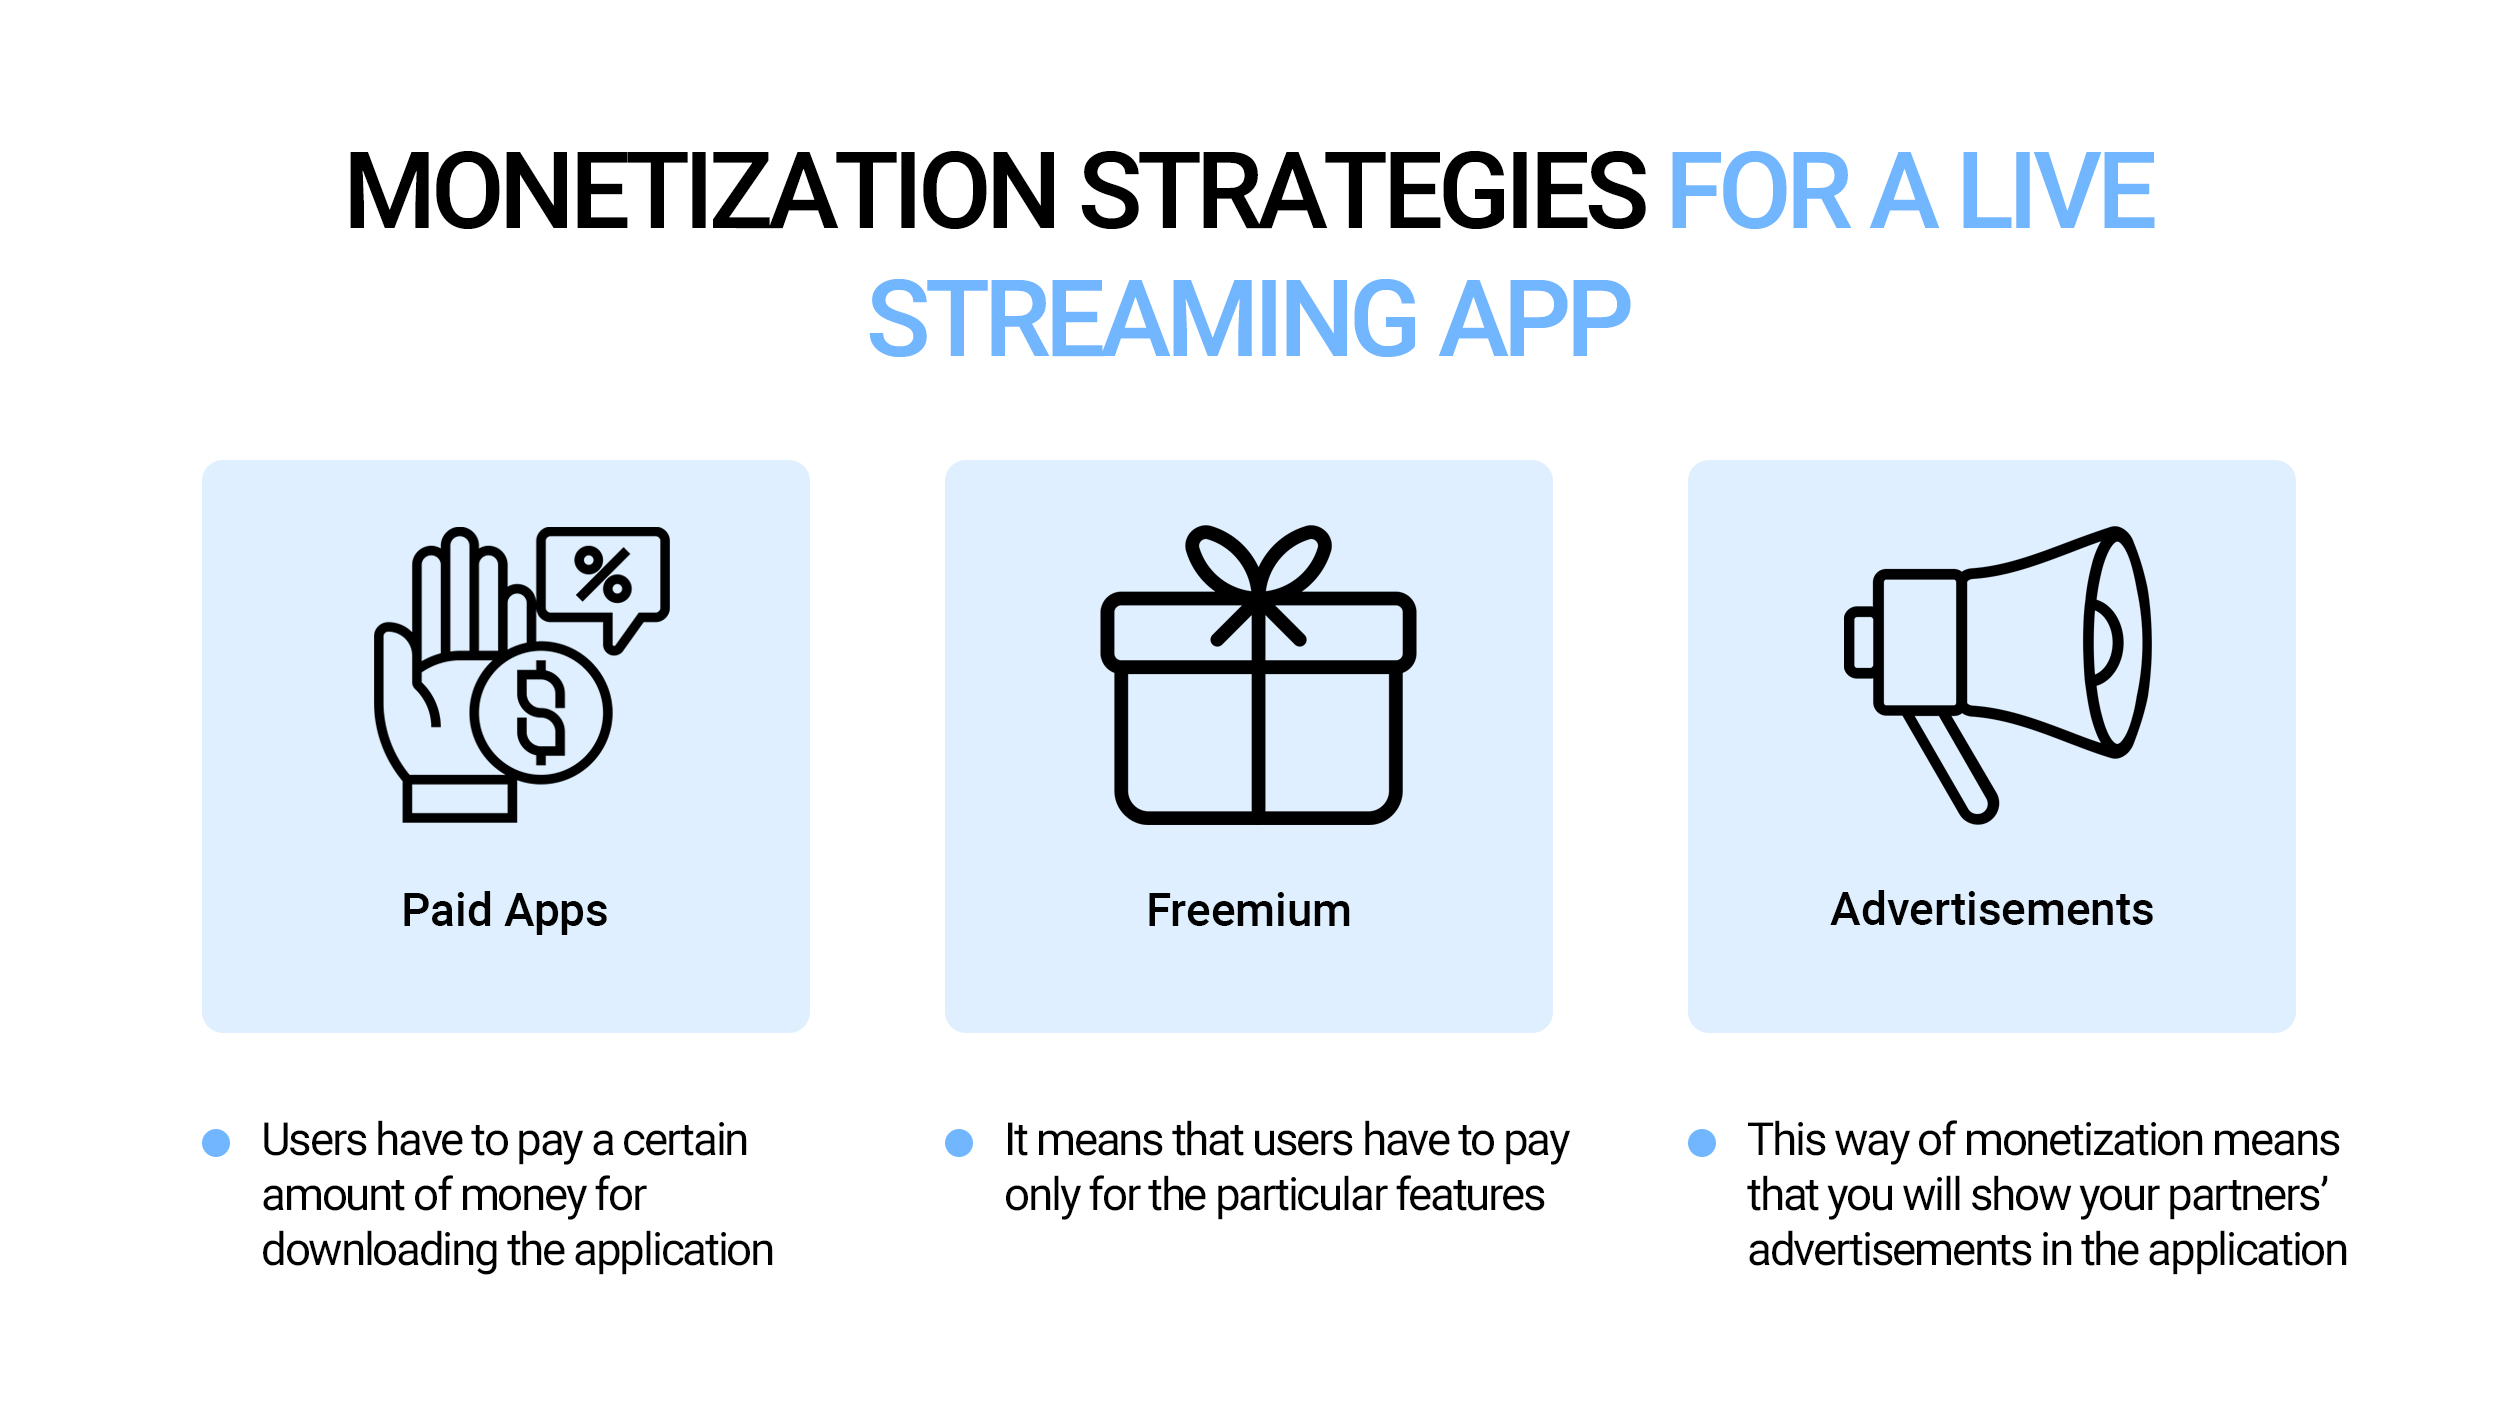 Monetization strategies for a live streaming app